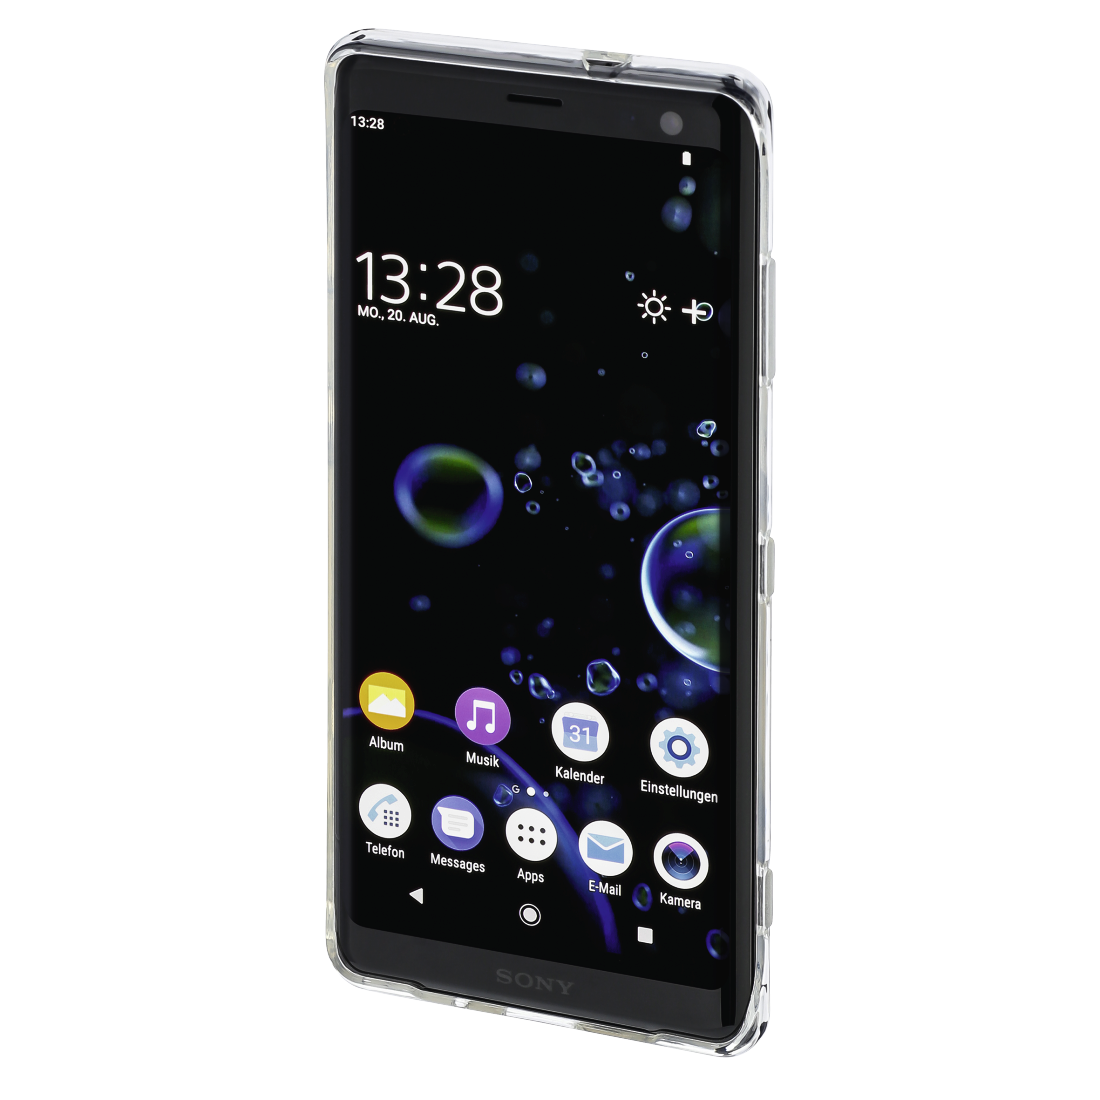 abx3 High-Res Image 3 - Hama, Coque de protection Crystal Clear pour Sony Xperia XZ3, transparente